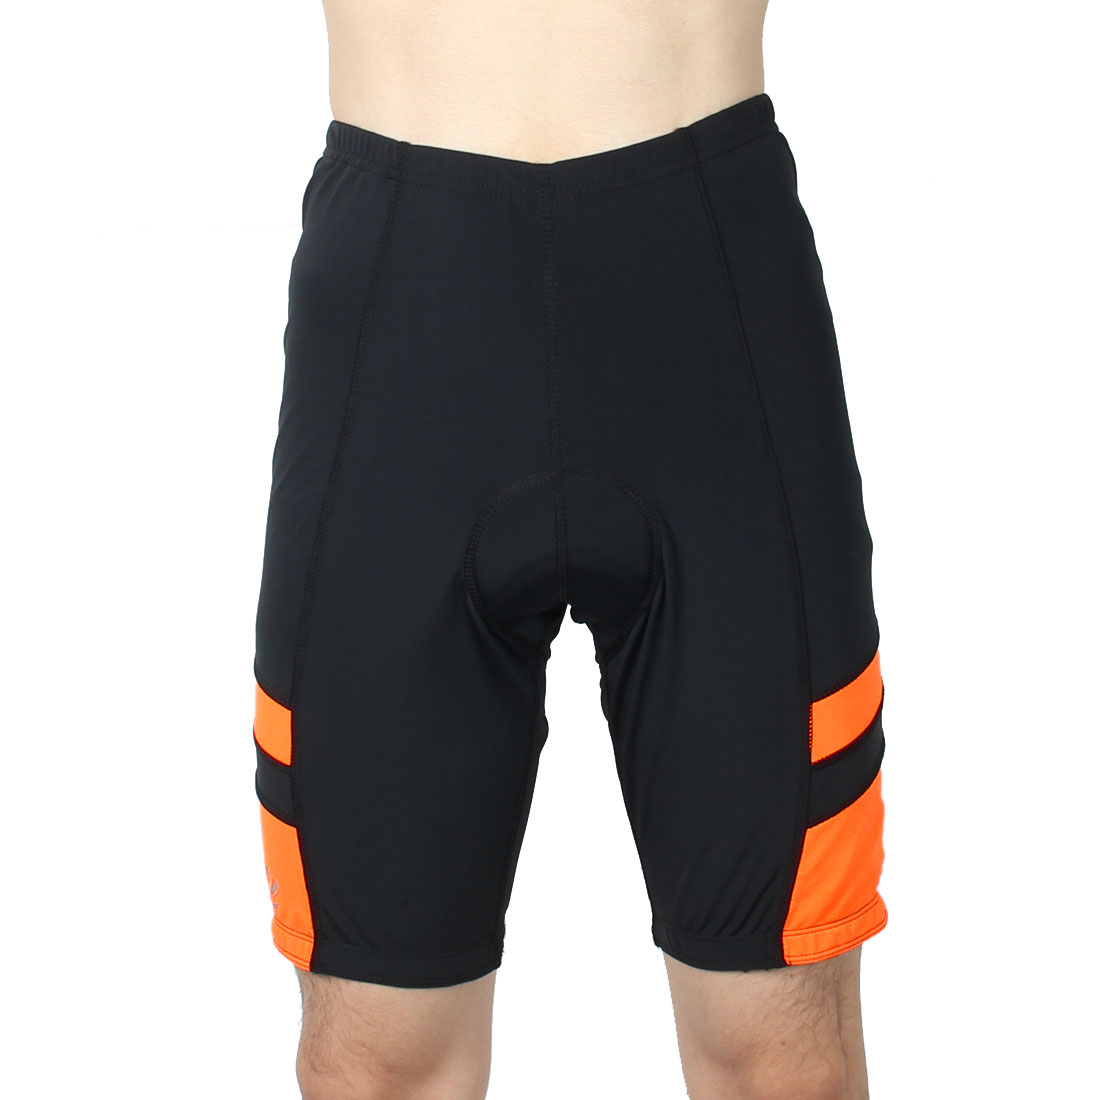 Men Polyester Outdoor Riding Bicycle Biking Breathable Underpants Half Pants Cycling Shorts Orange XL